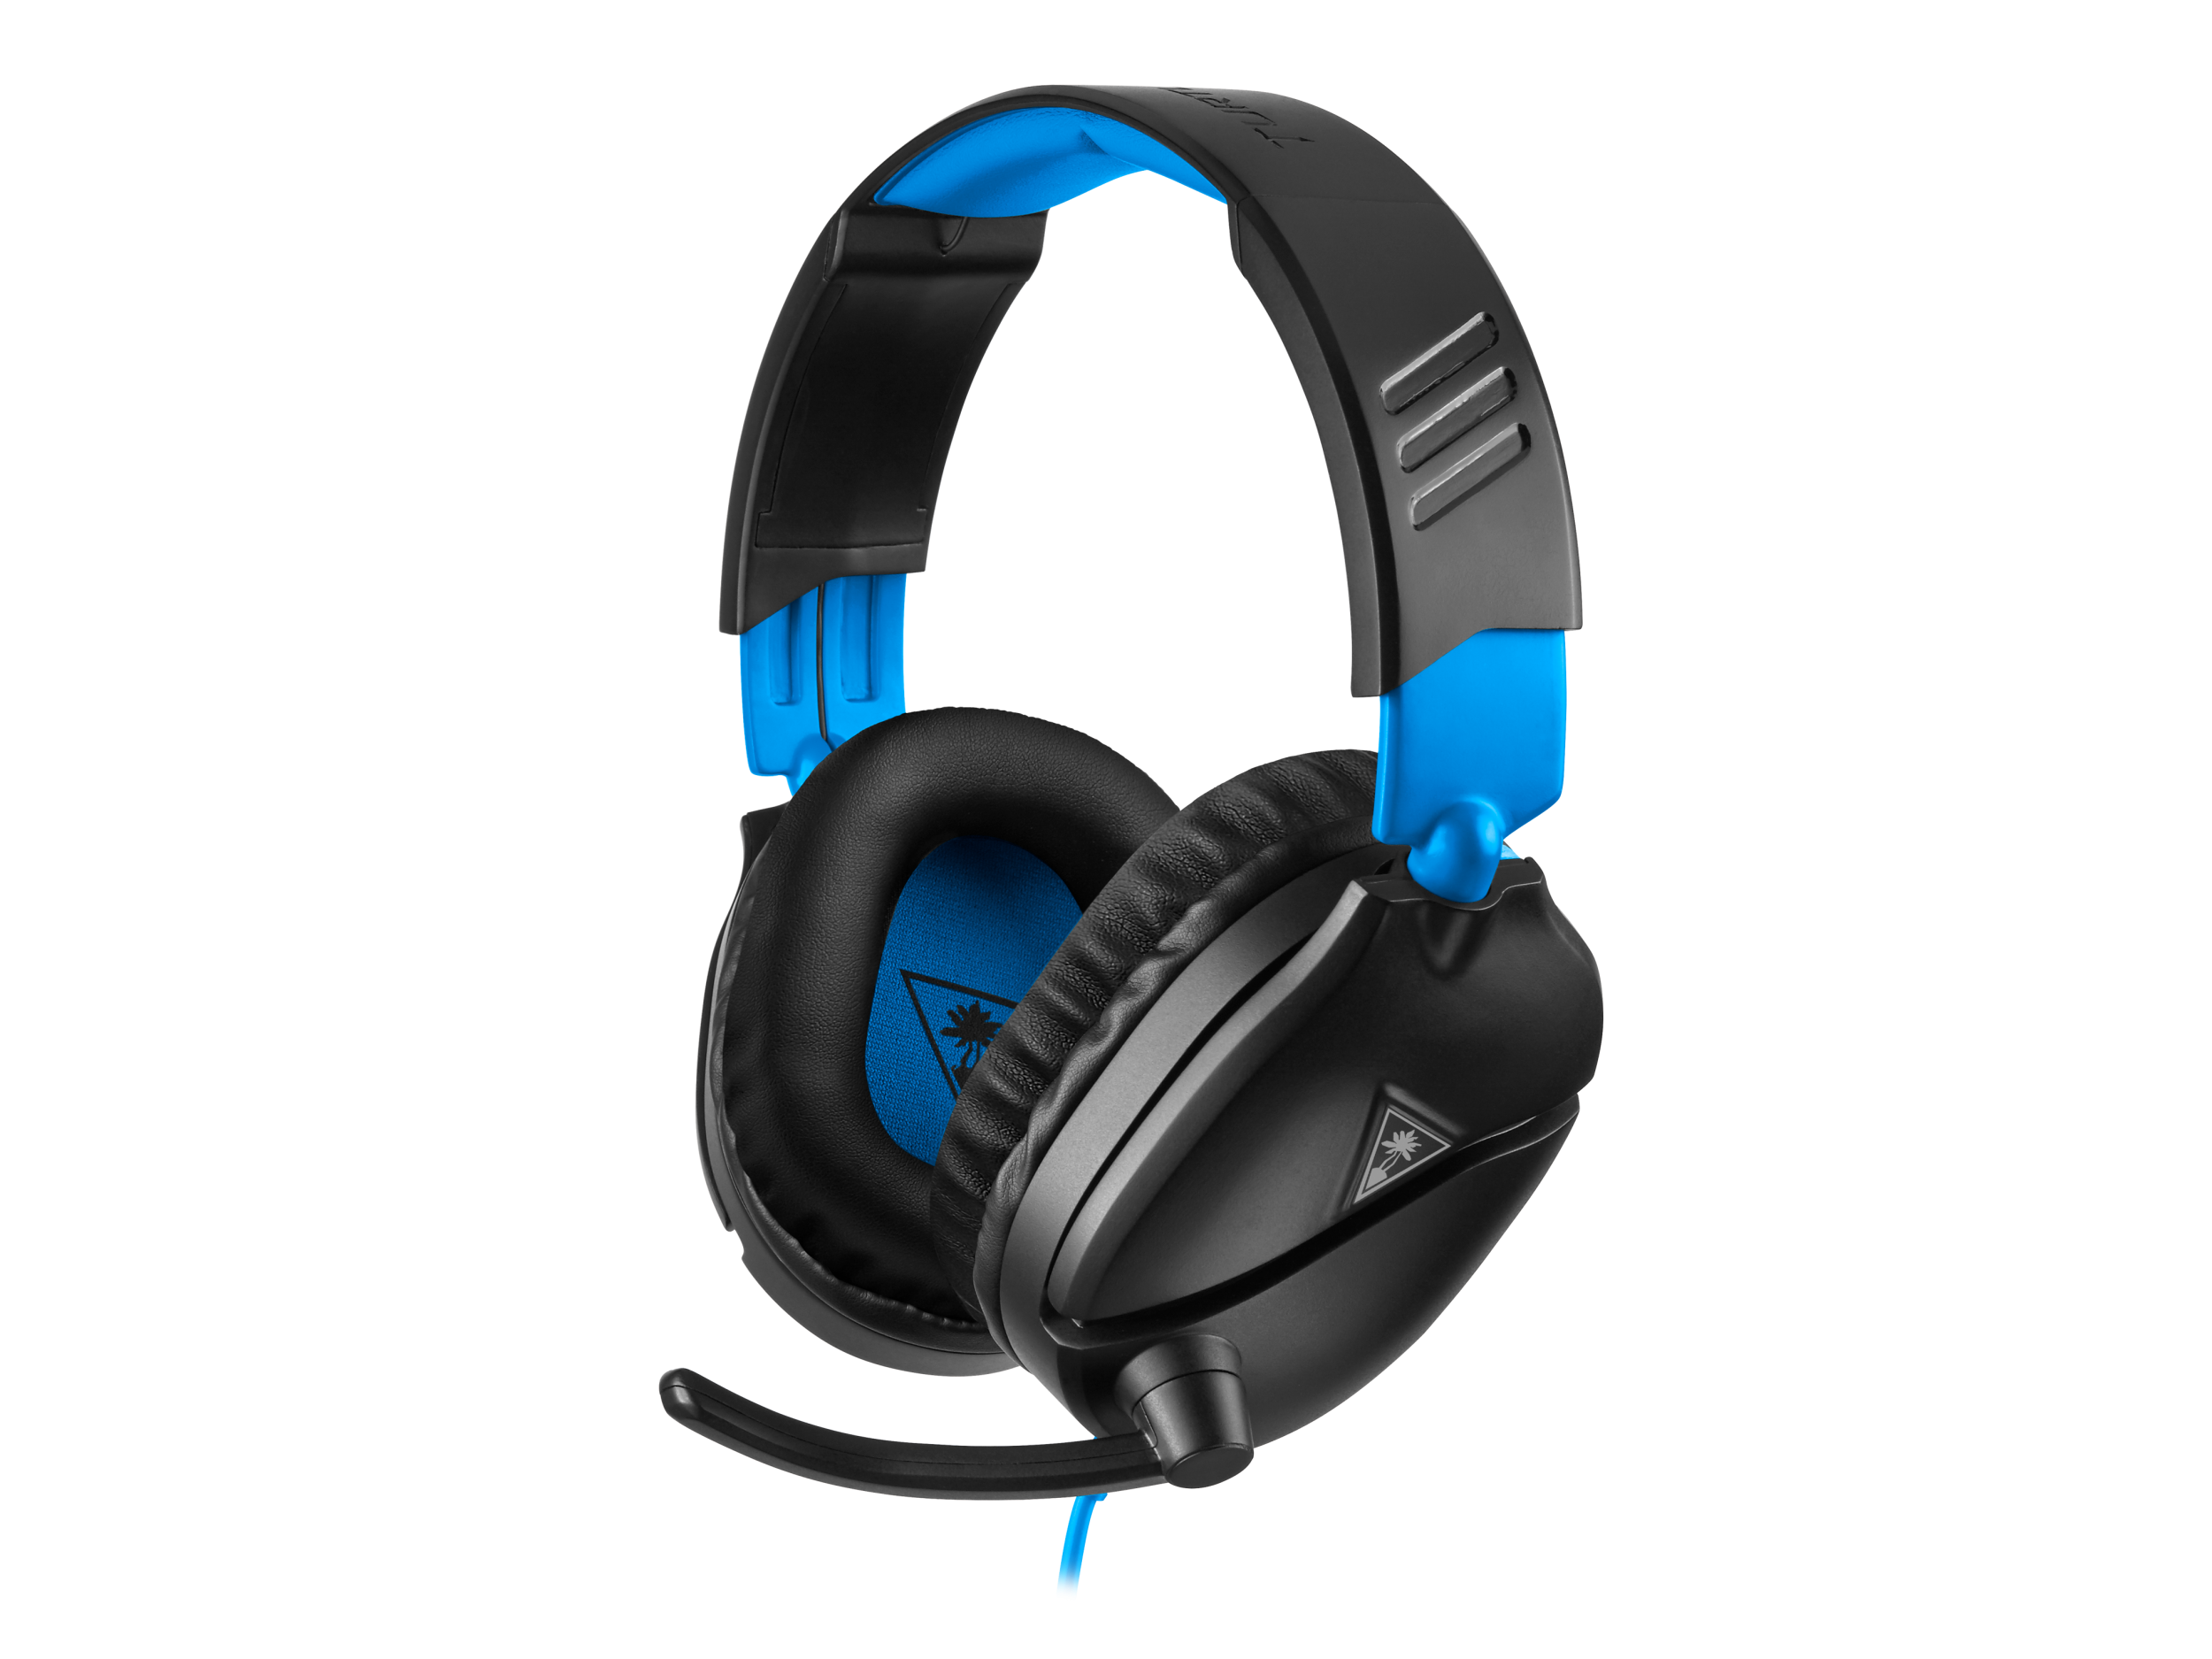 Gaming headset buyer's guide – Reader's